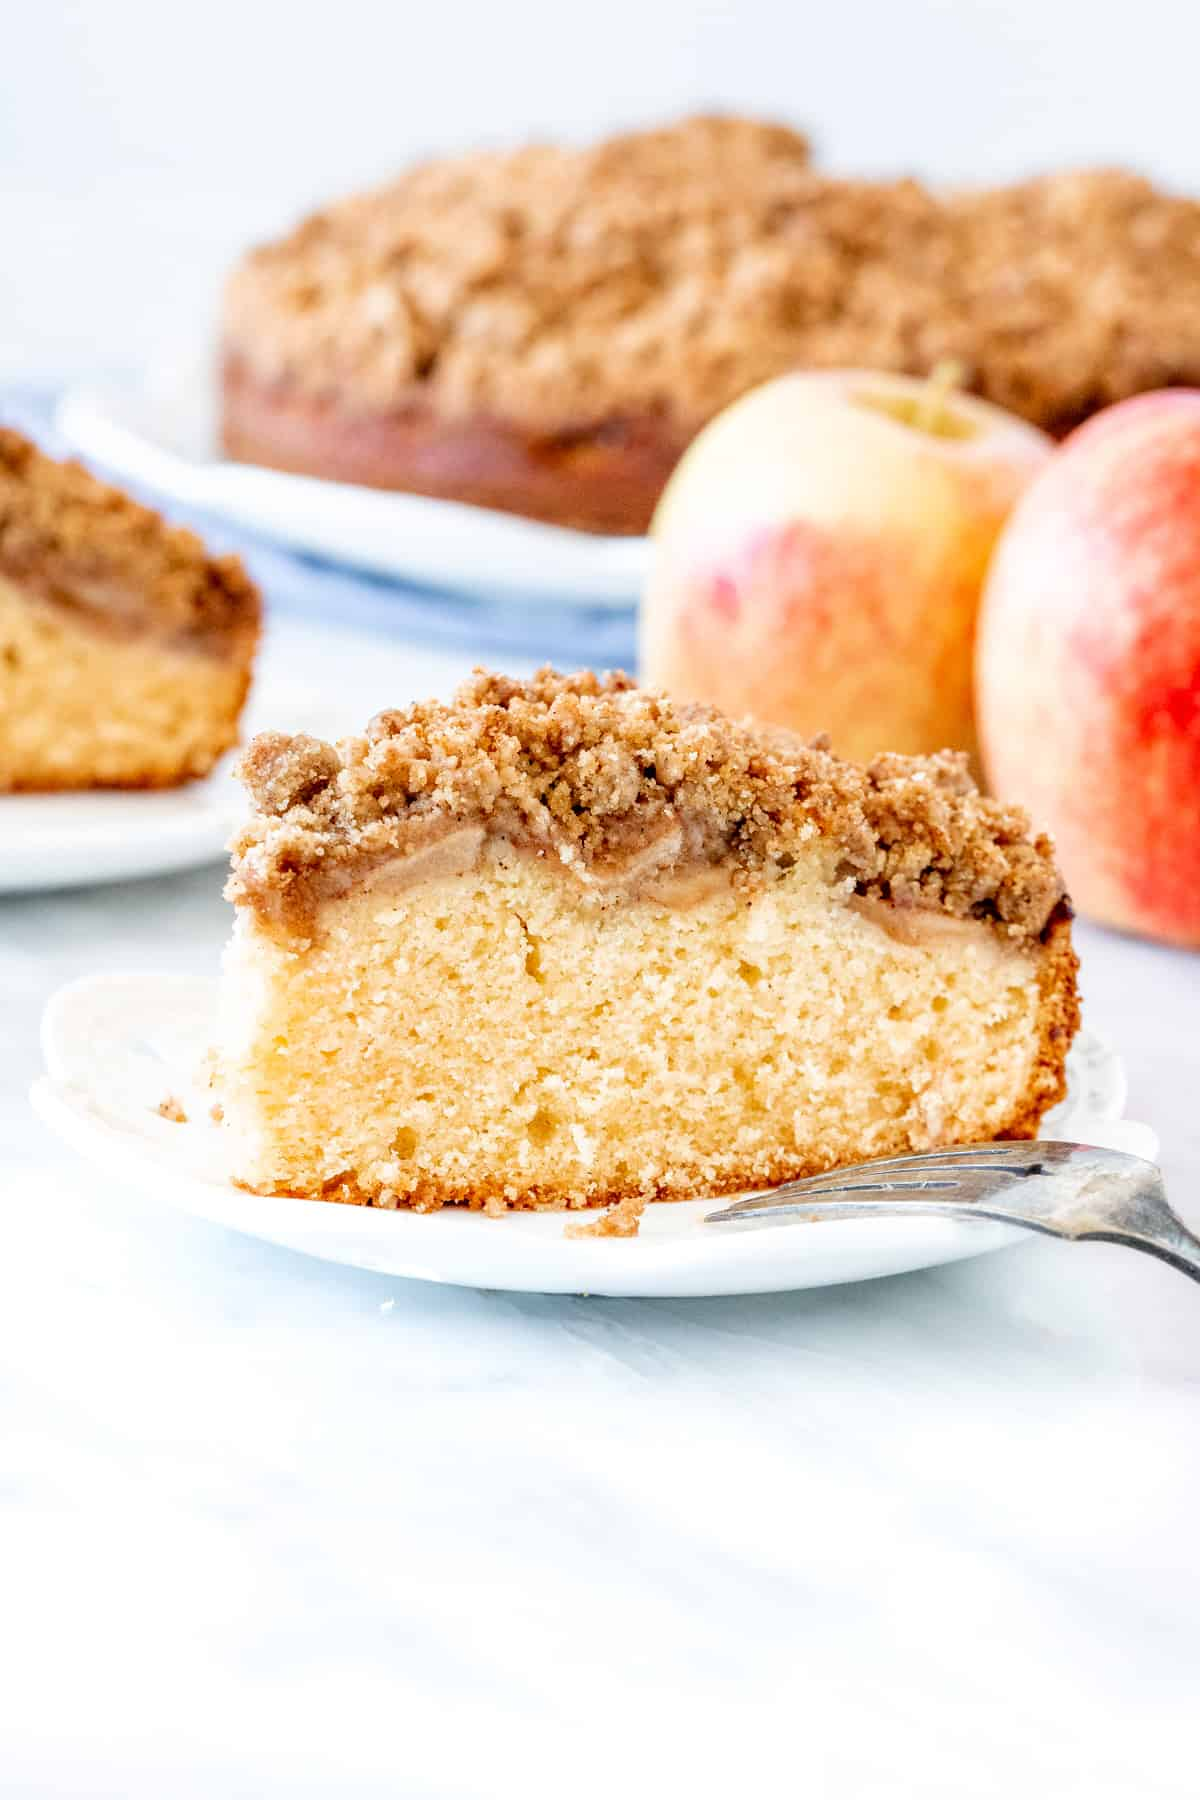 Slice of apple cake with streusel topping